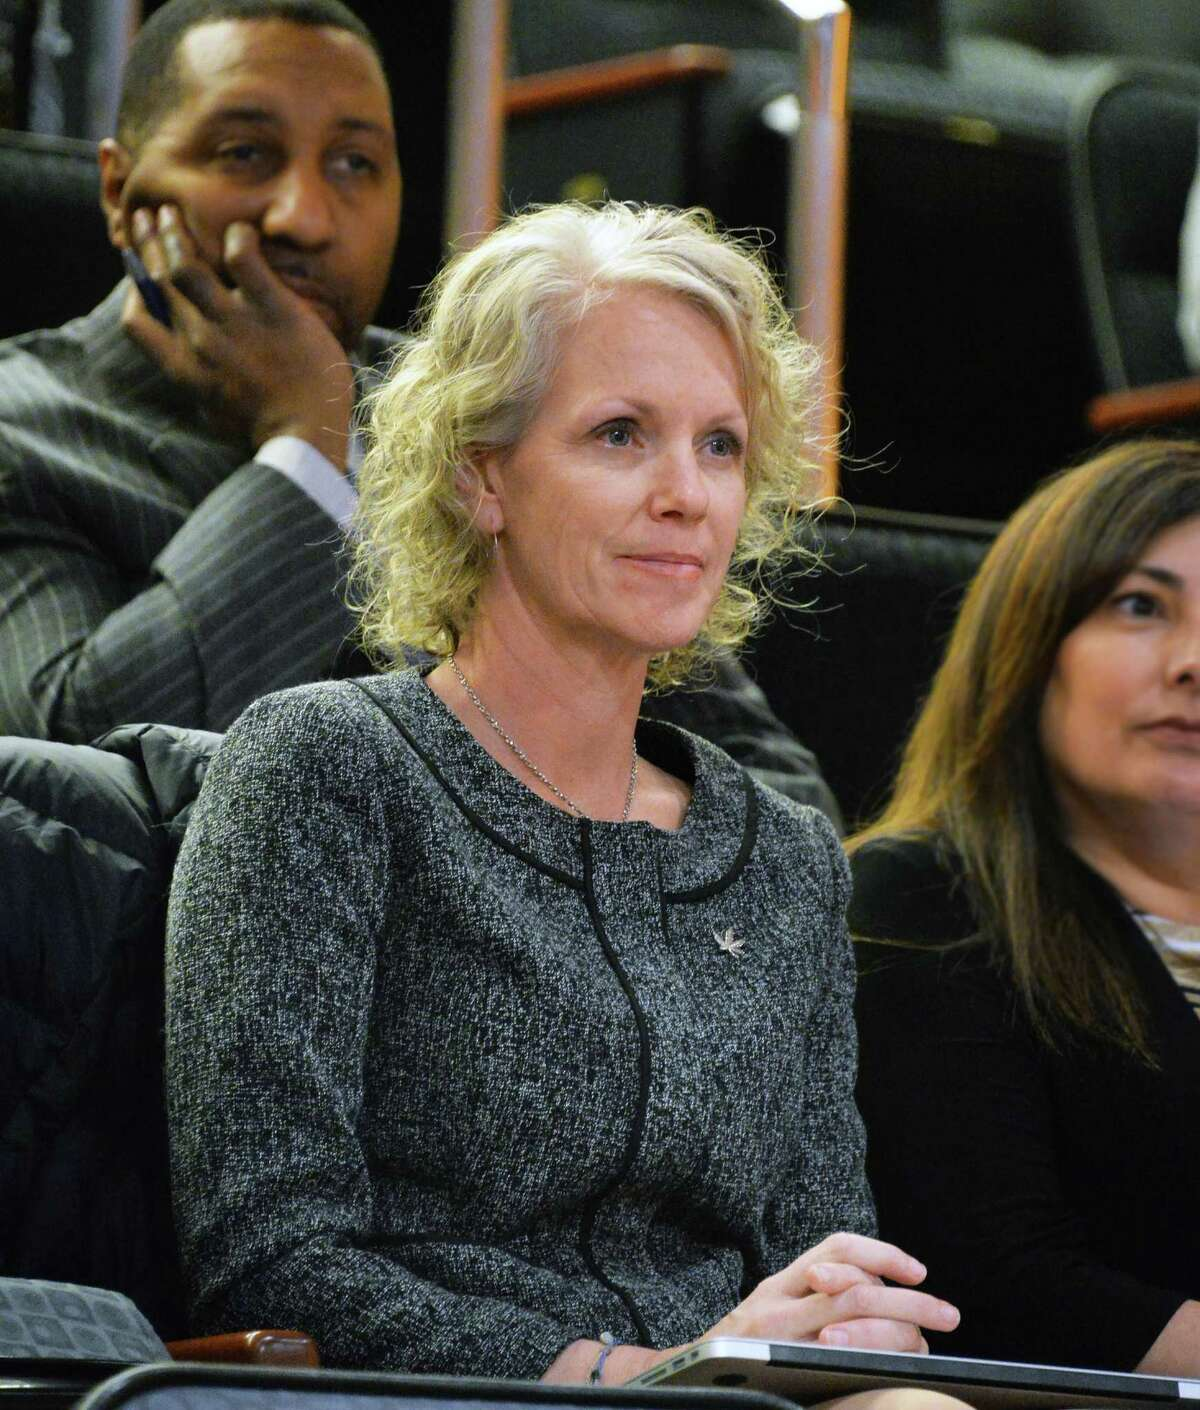 Meg Sanders, CEO of the Denver based Gaia Plant Based Medicine, listens to testimony during a NYS Senate hearing on legalizing marijuana Wednesday, March 12, 2014, in Albany, N.Y. (John Carl D'Annibale / Times Union)